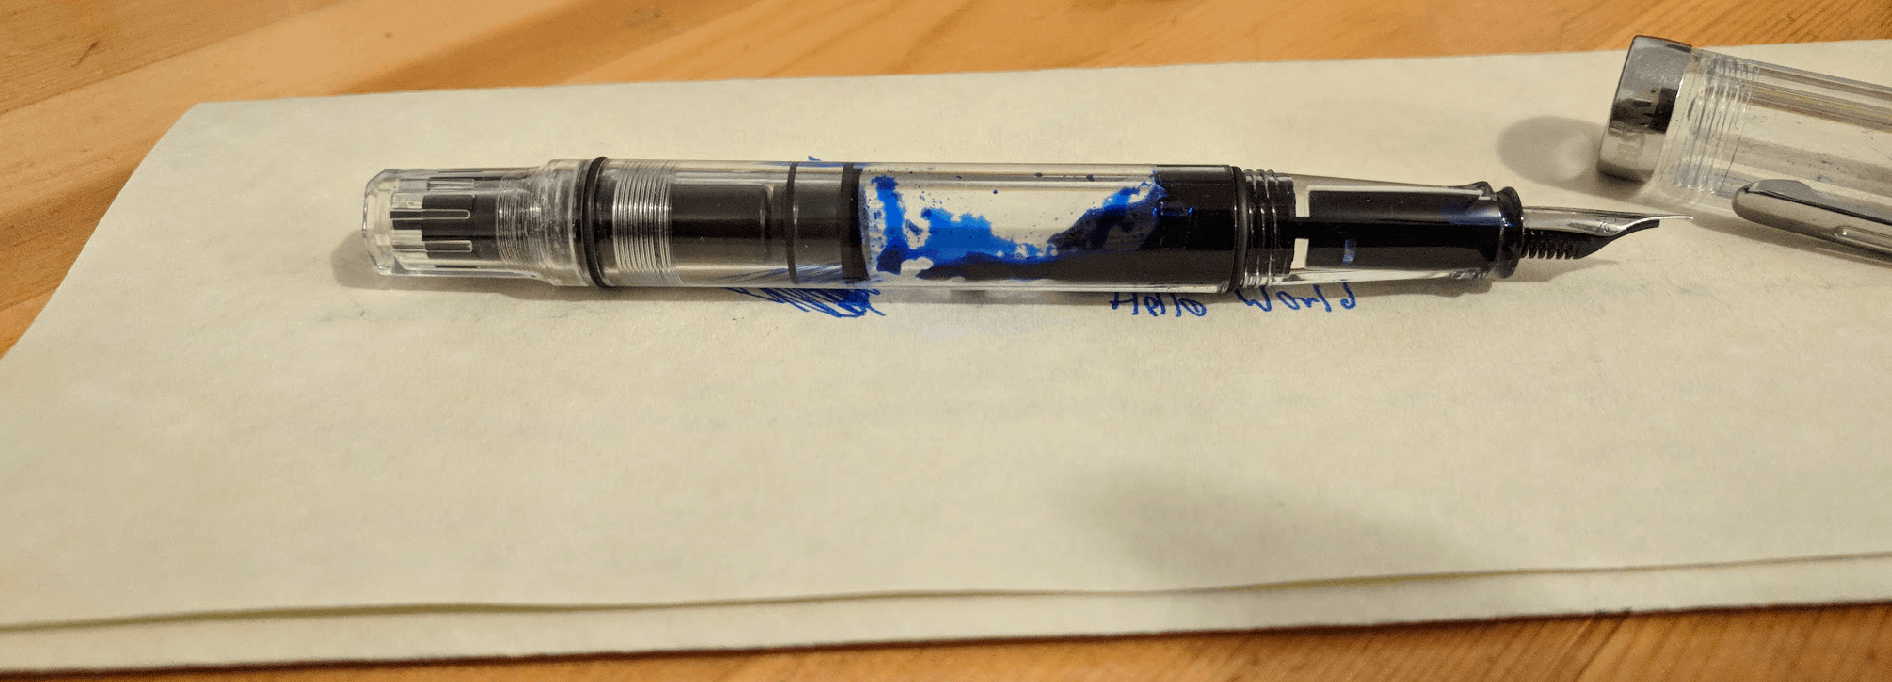 ubuntu fountain pen